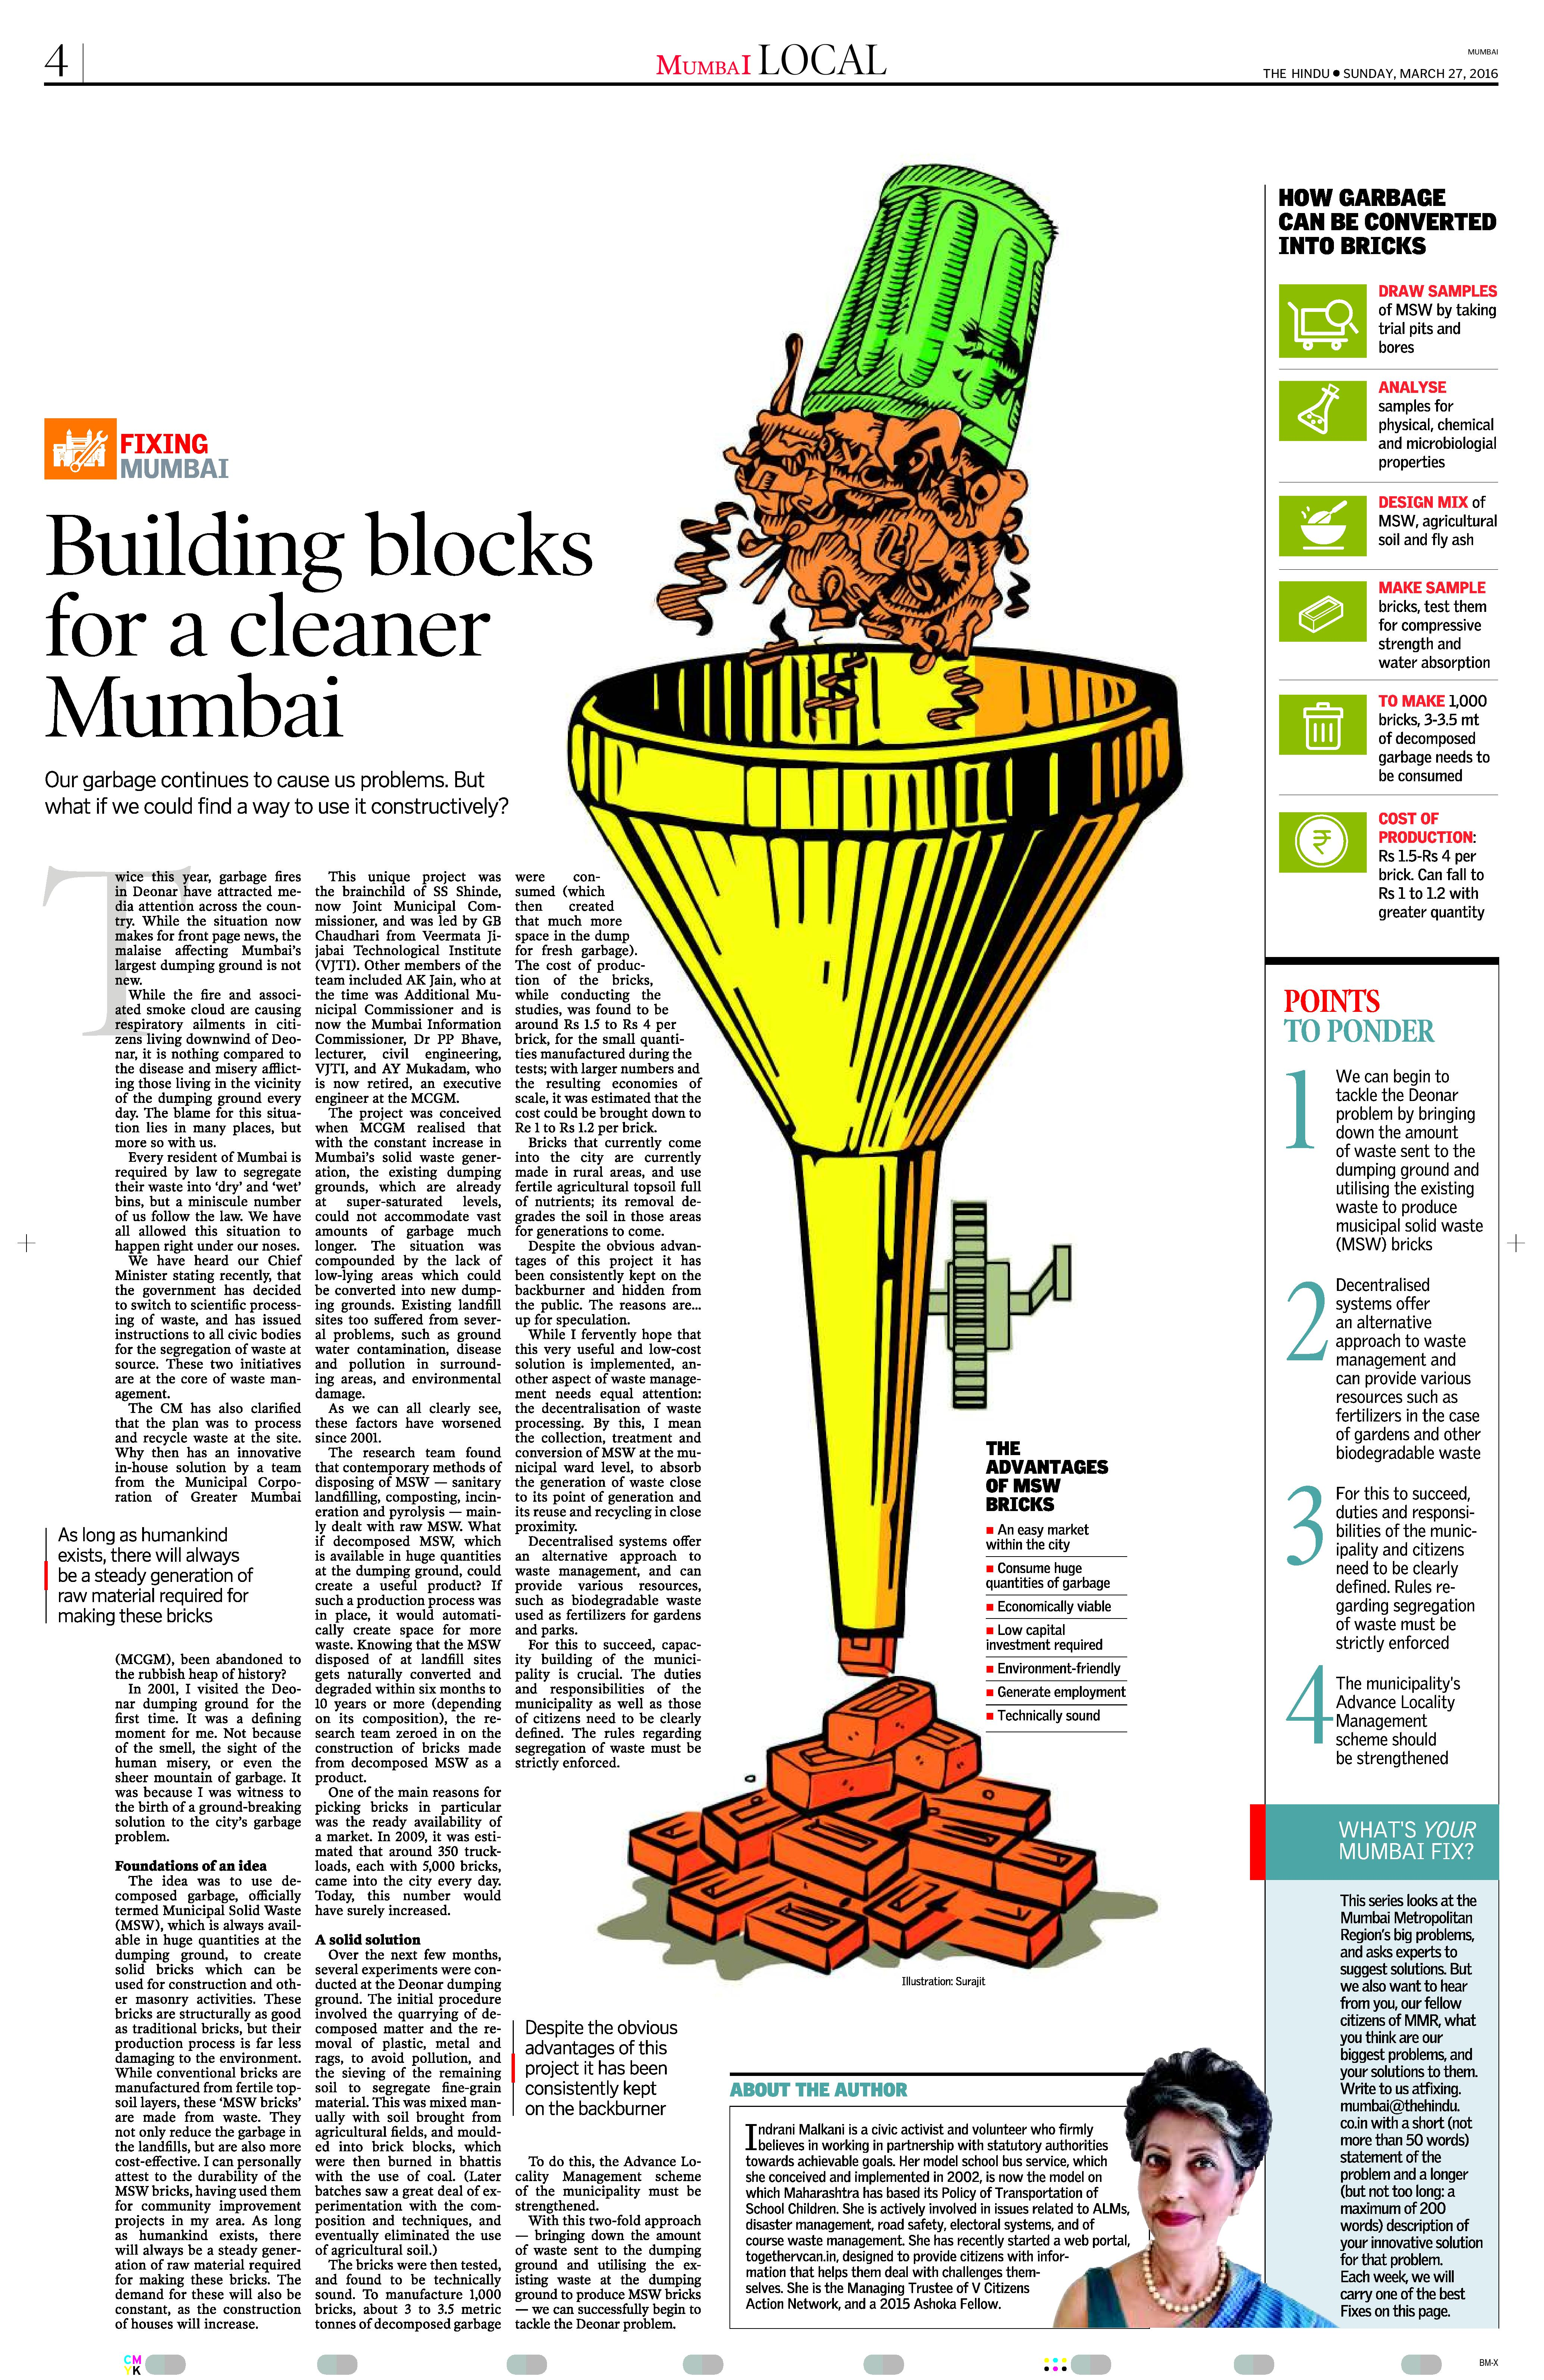 Article by Indrani Malkani published in The HINDU titled Fixing Mumbai dt 27th March 2016